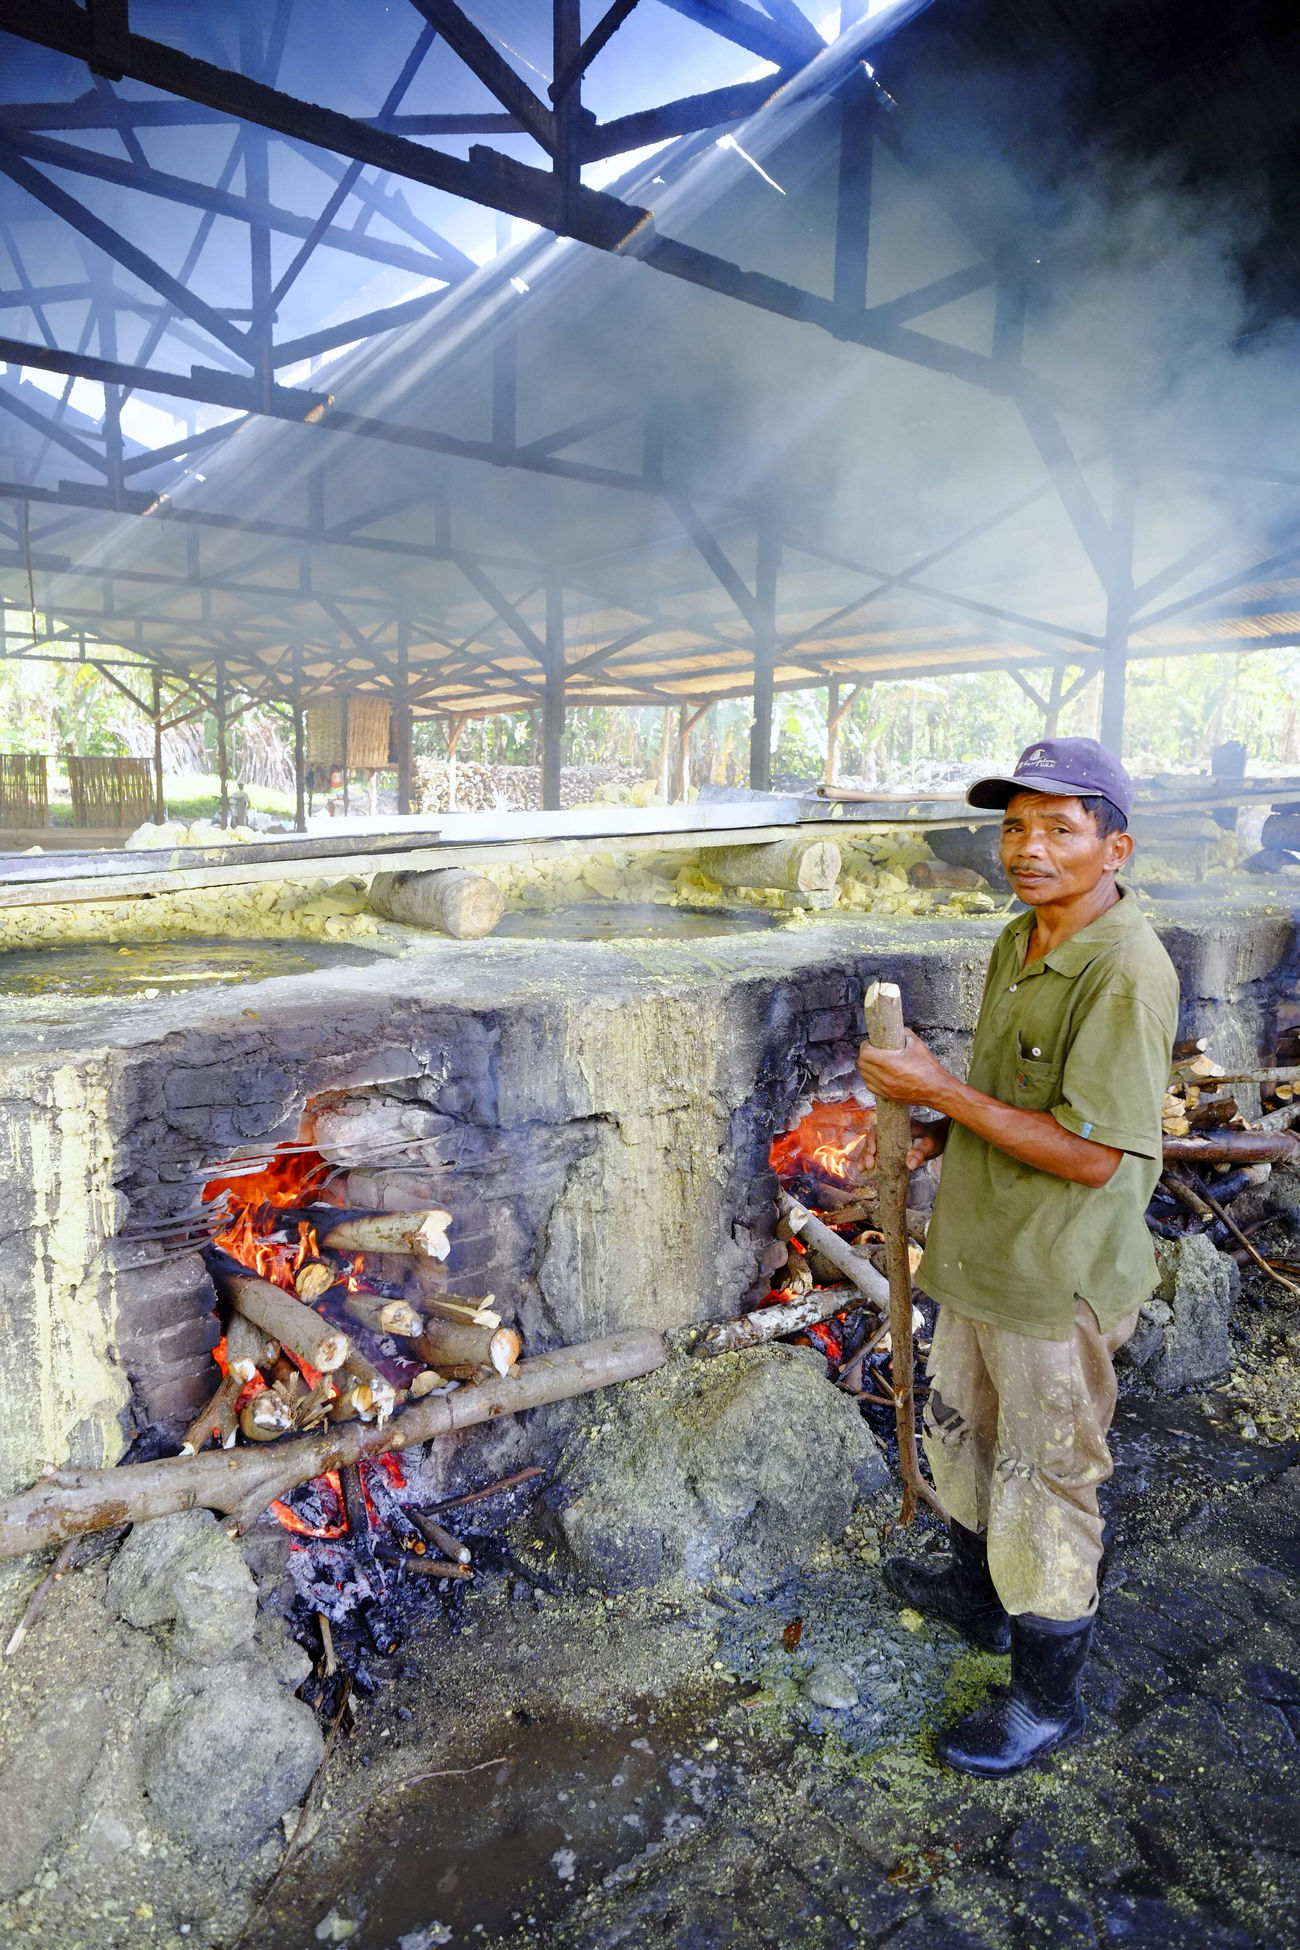 Sulfur mainer in action Cooking Daily Life Factory INDONESIA People Process Sulfur  Sulfur Miners Workers At Work